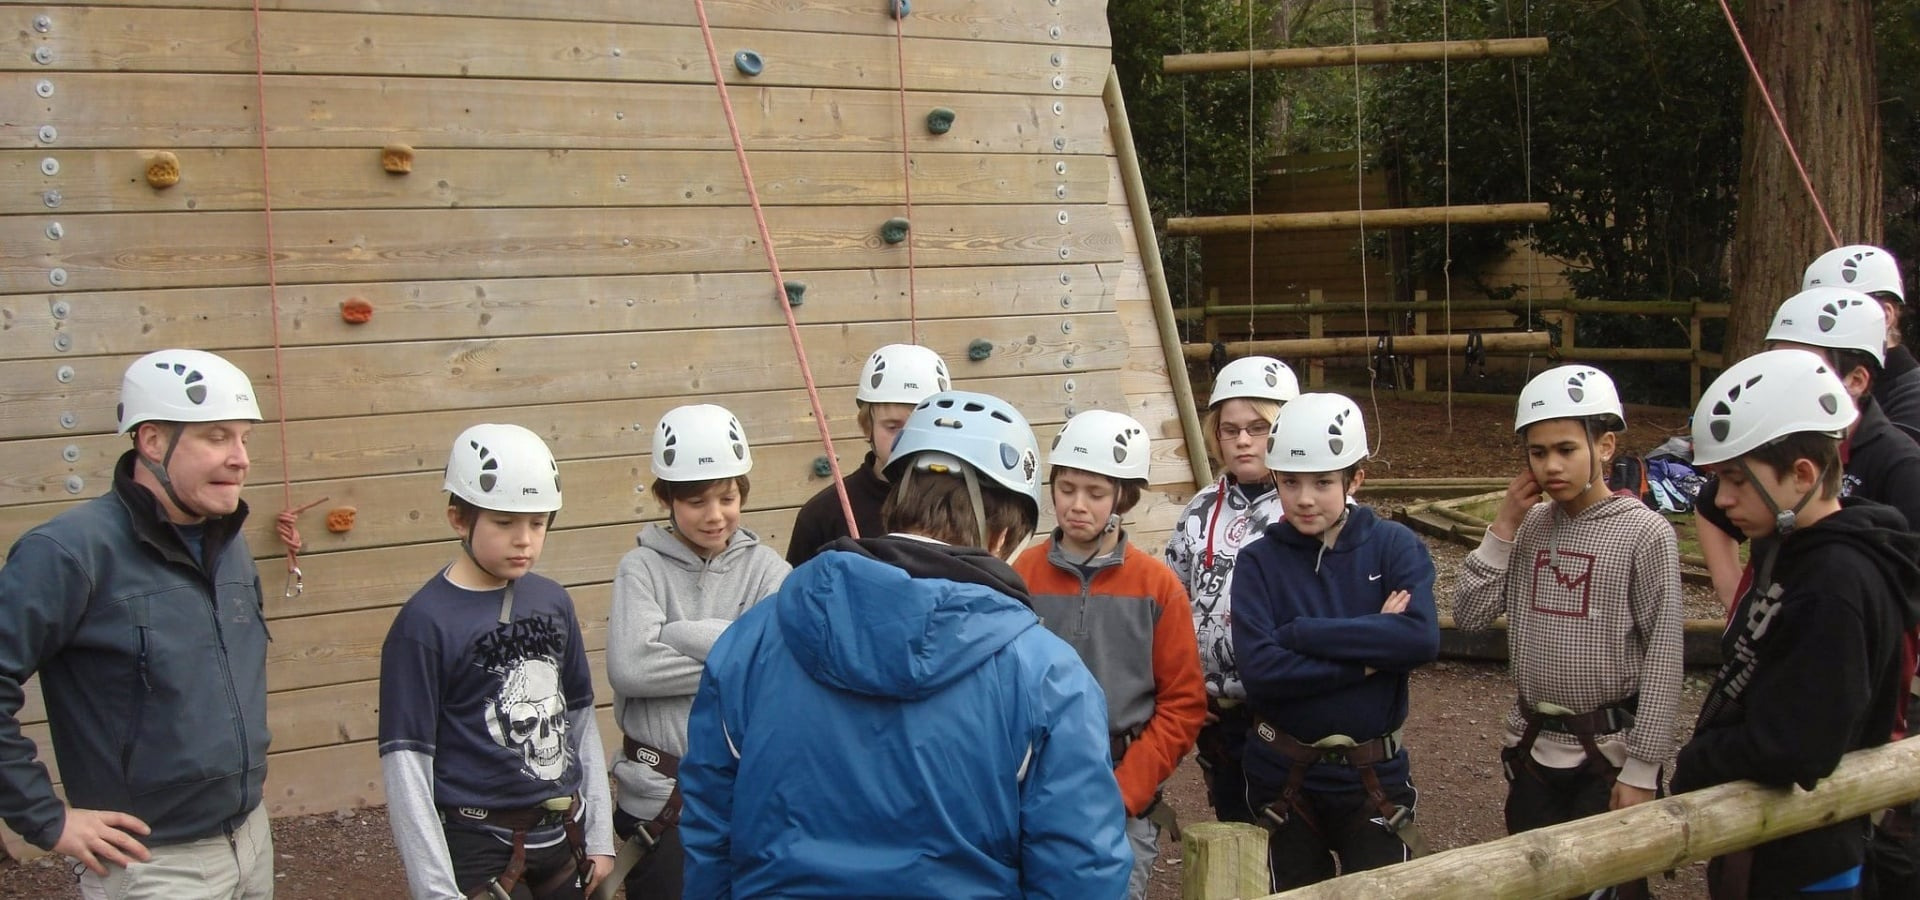 Full Day Multi Adventure Activity Course - Shropshire-4